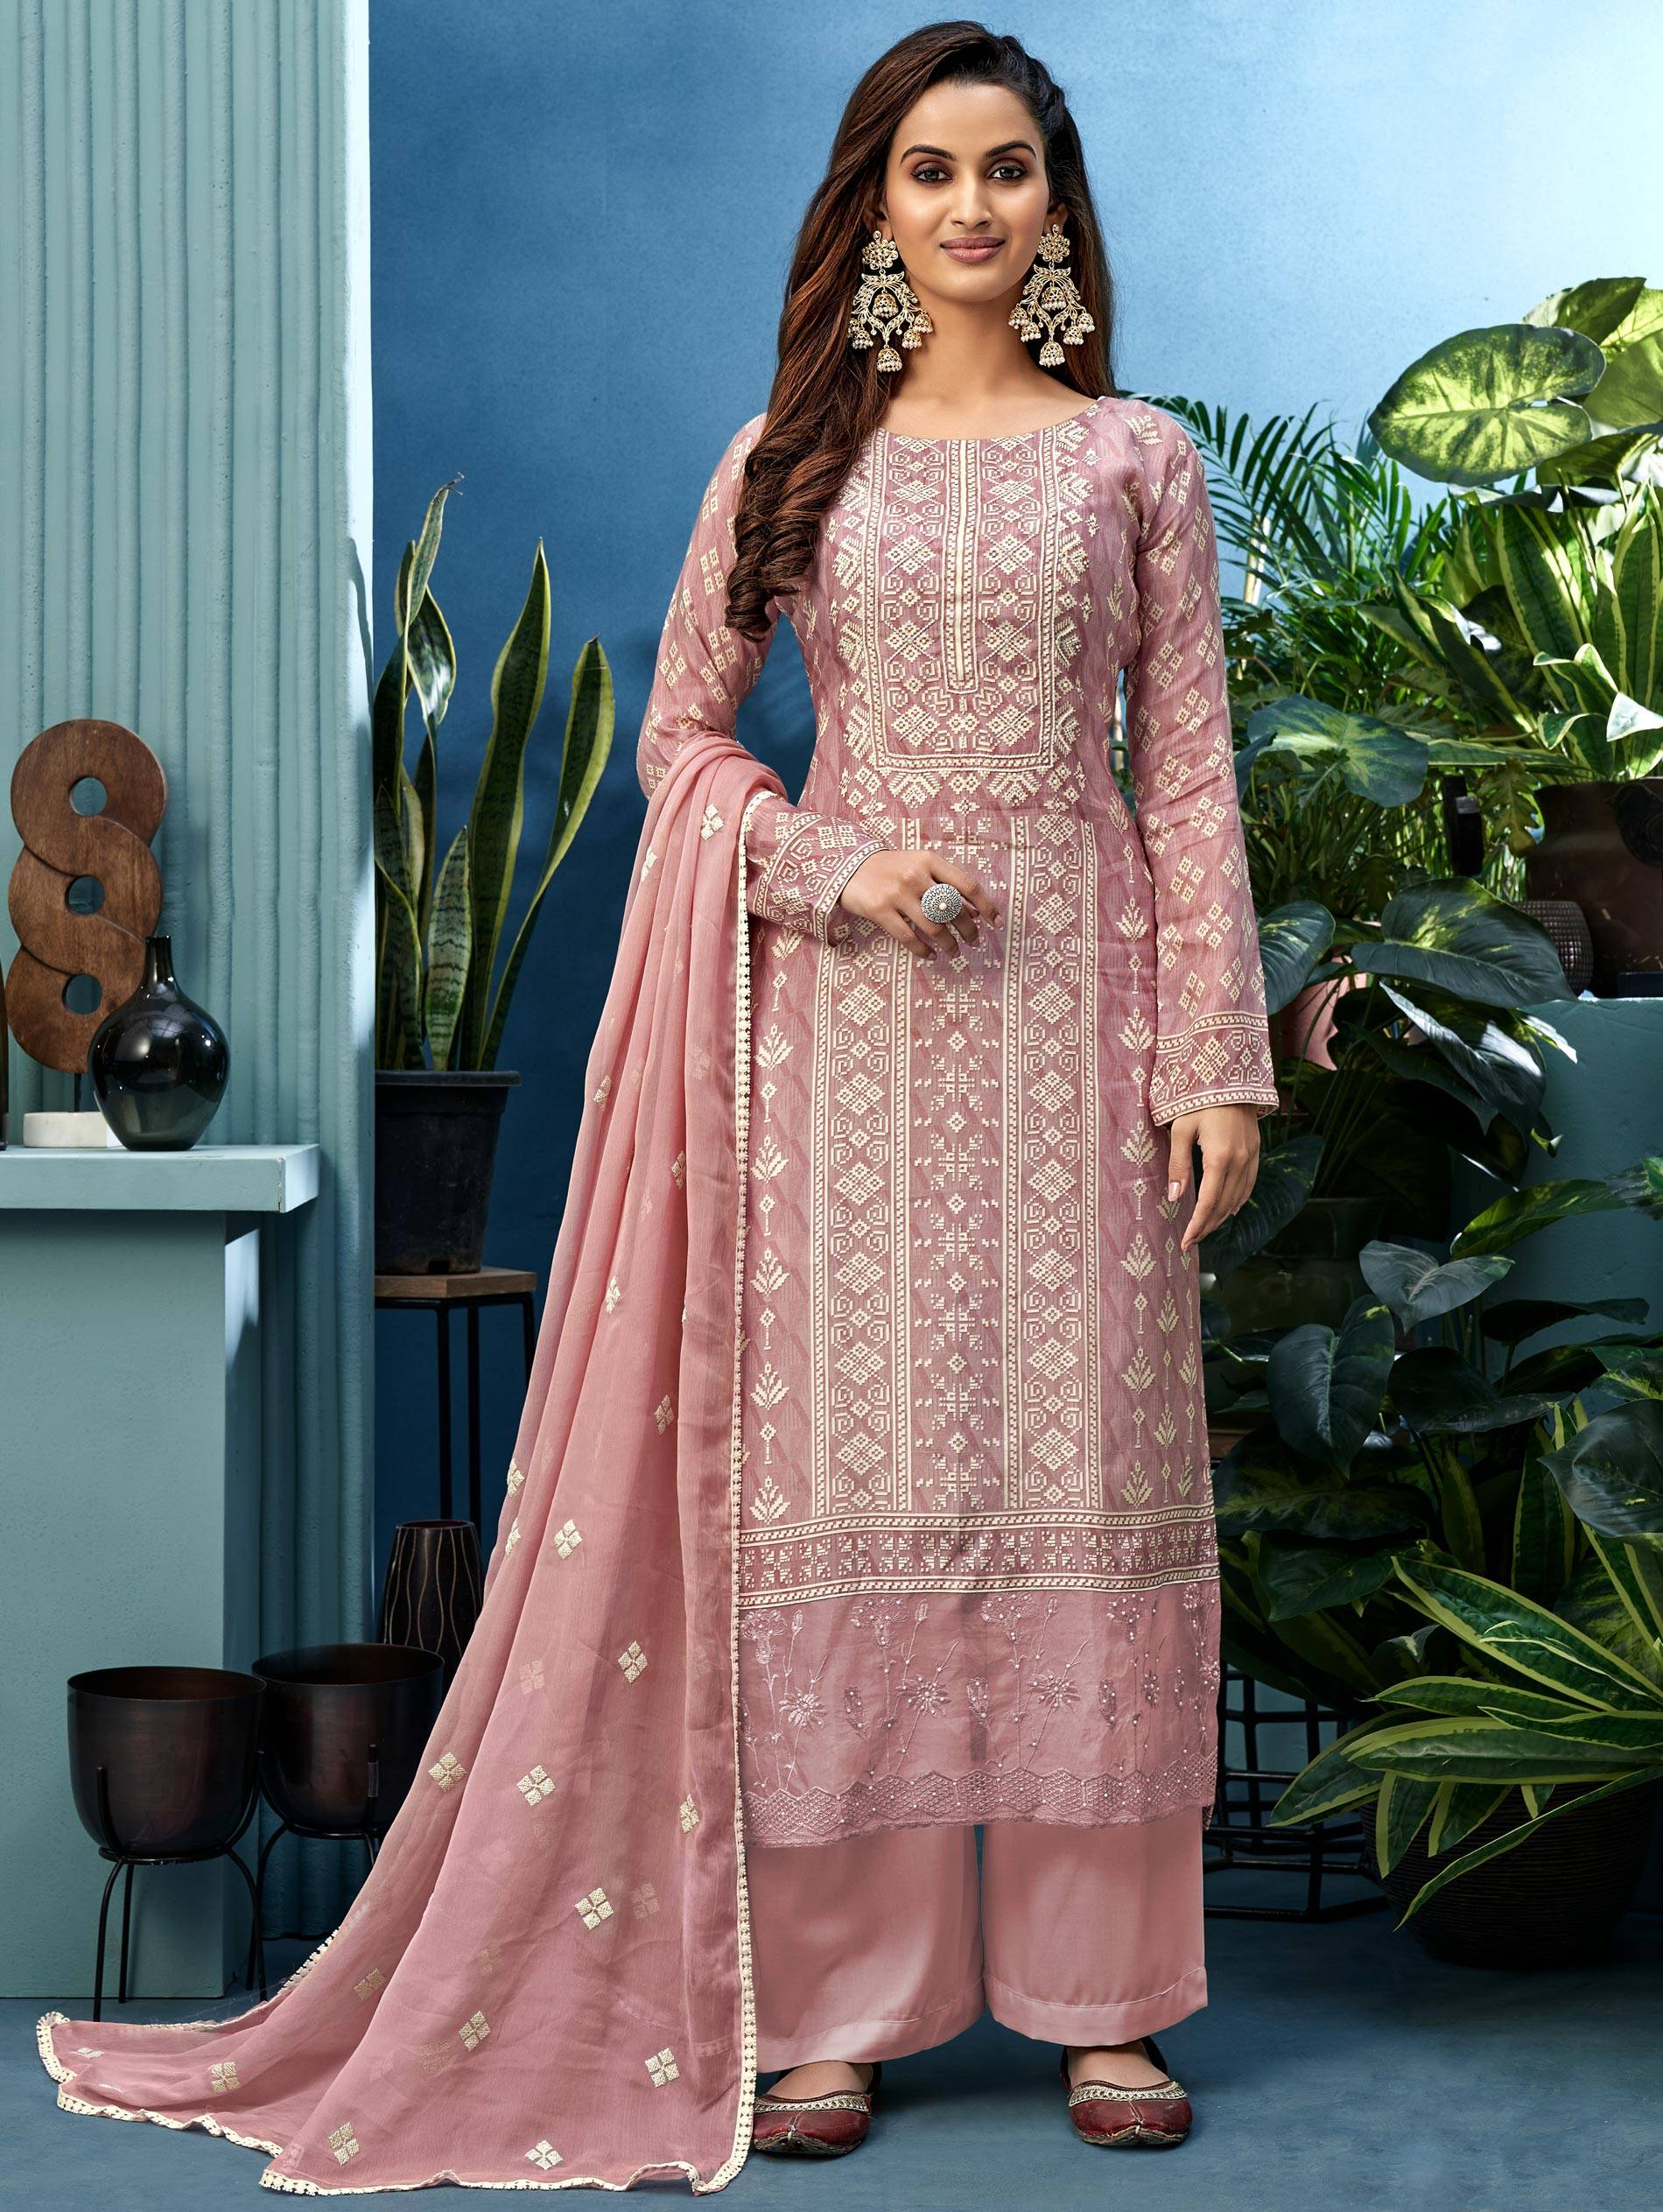 Heavy Embroidered Baby Pink Salwar Suit Punjabi Straight Cut